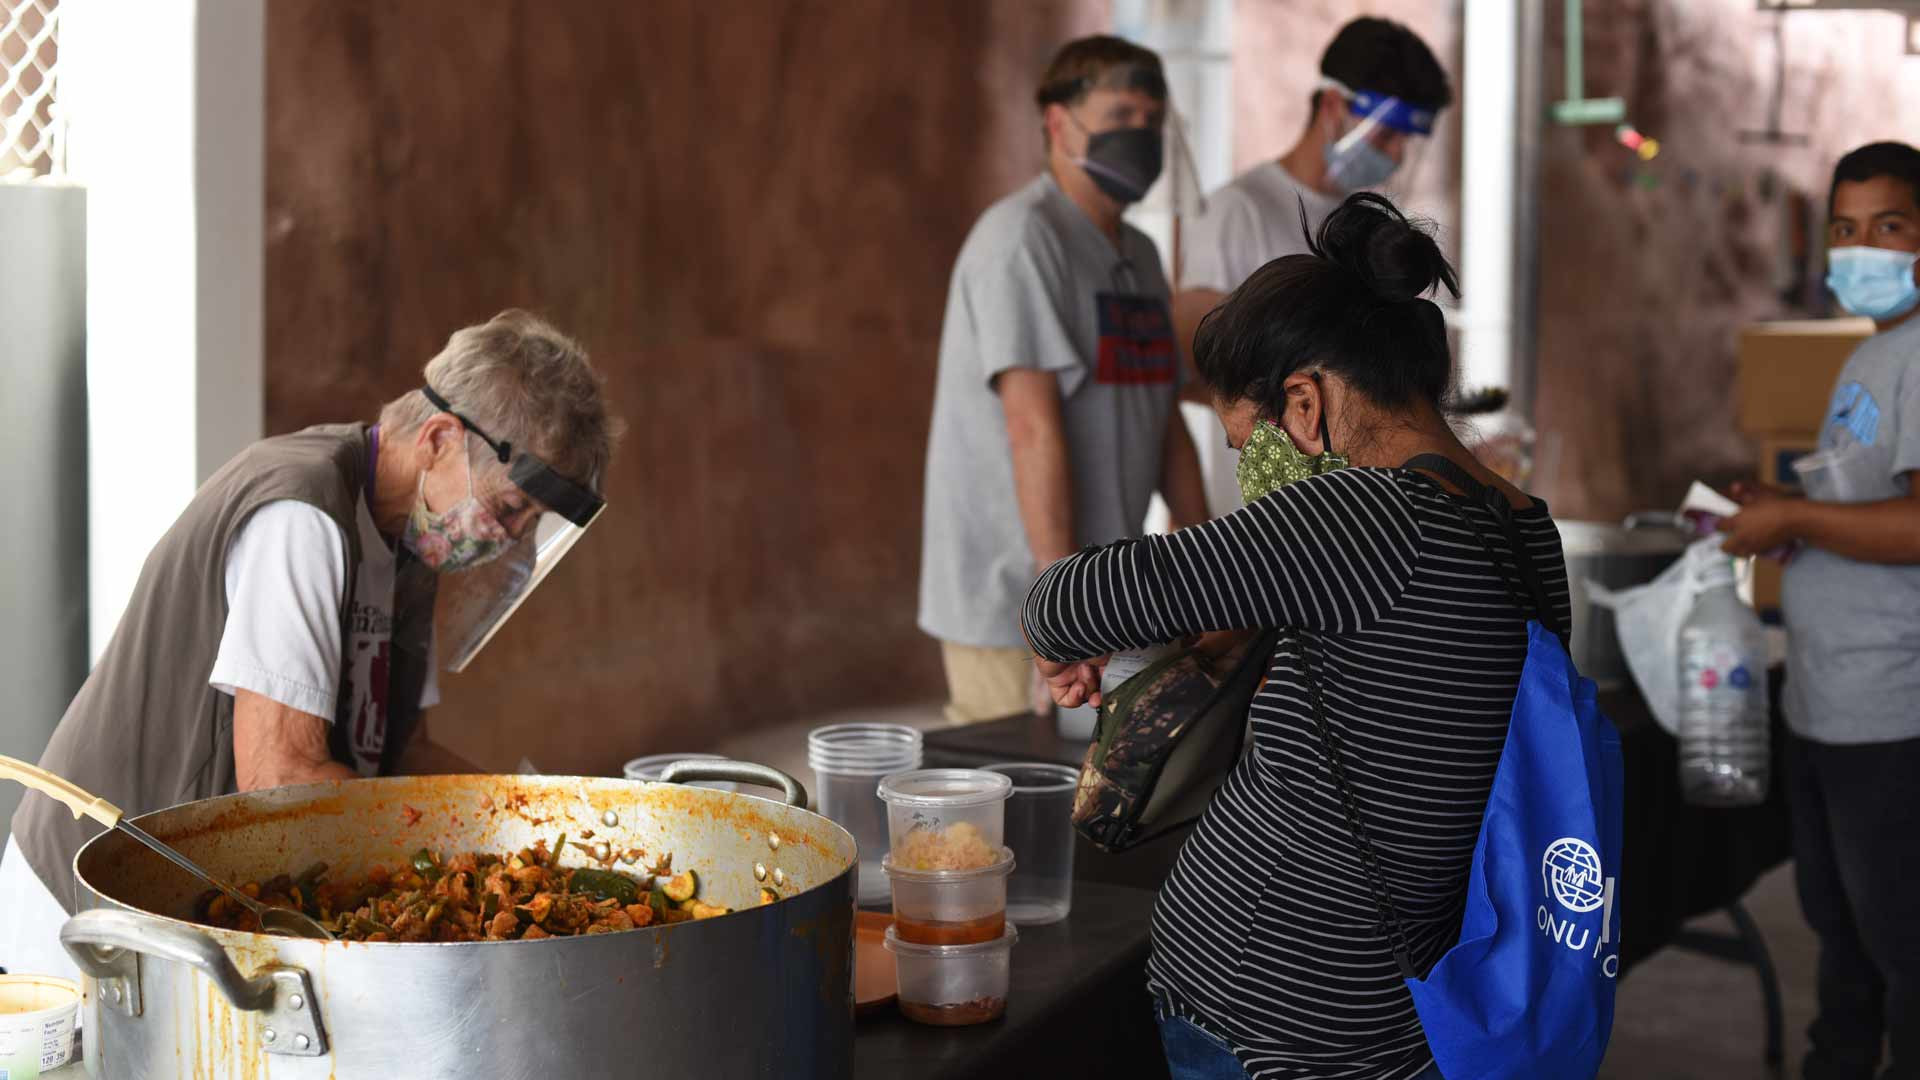 A migrant receives a serving of breakfast at the Kino Border Initiative in Nogales, Sonora. The faith-based shelter offers food, showers and other services, and also partners with legal aid groups to offer case assistance.